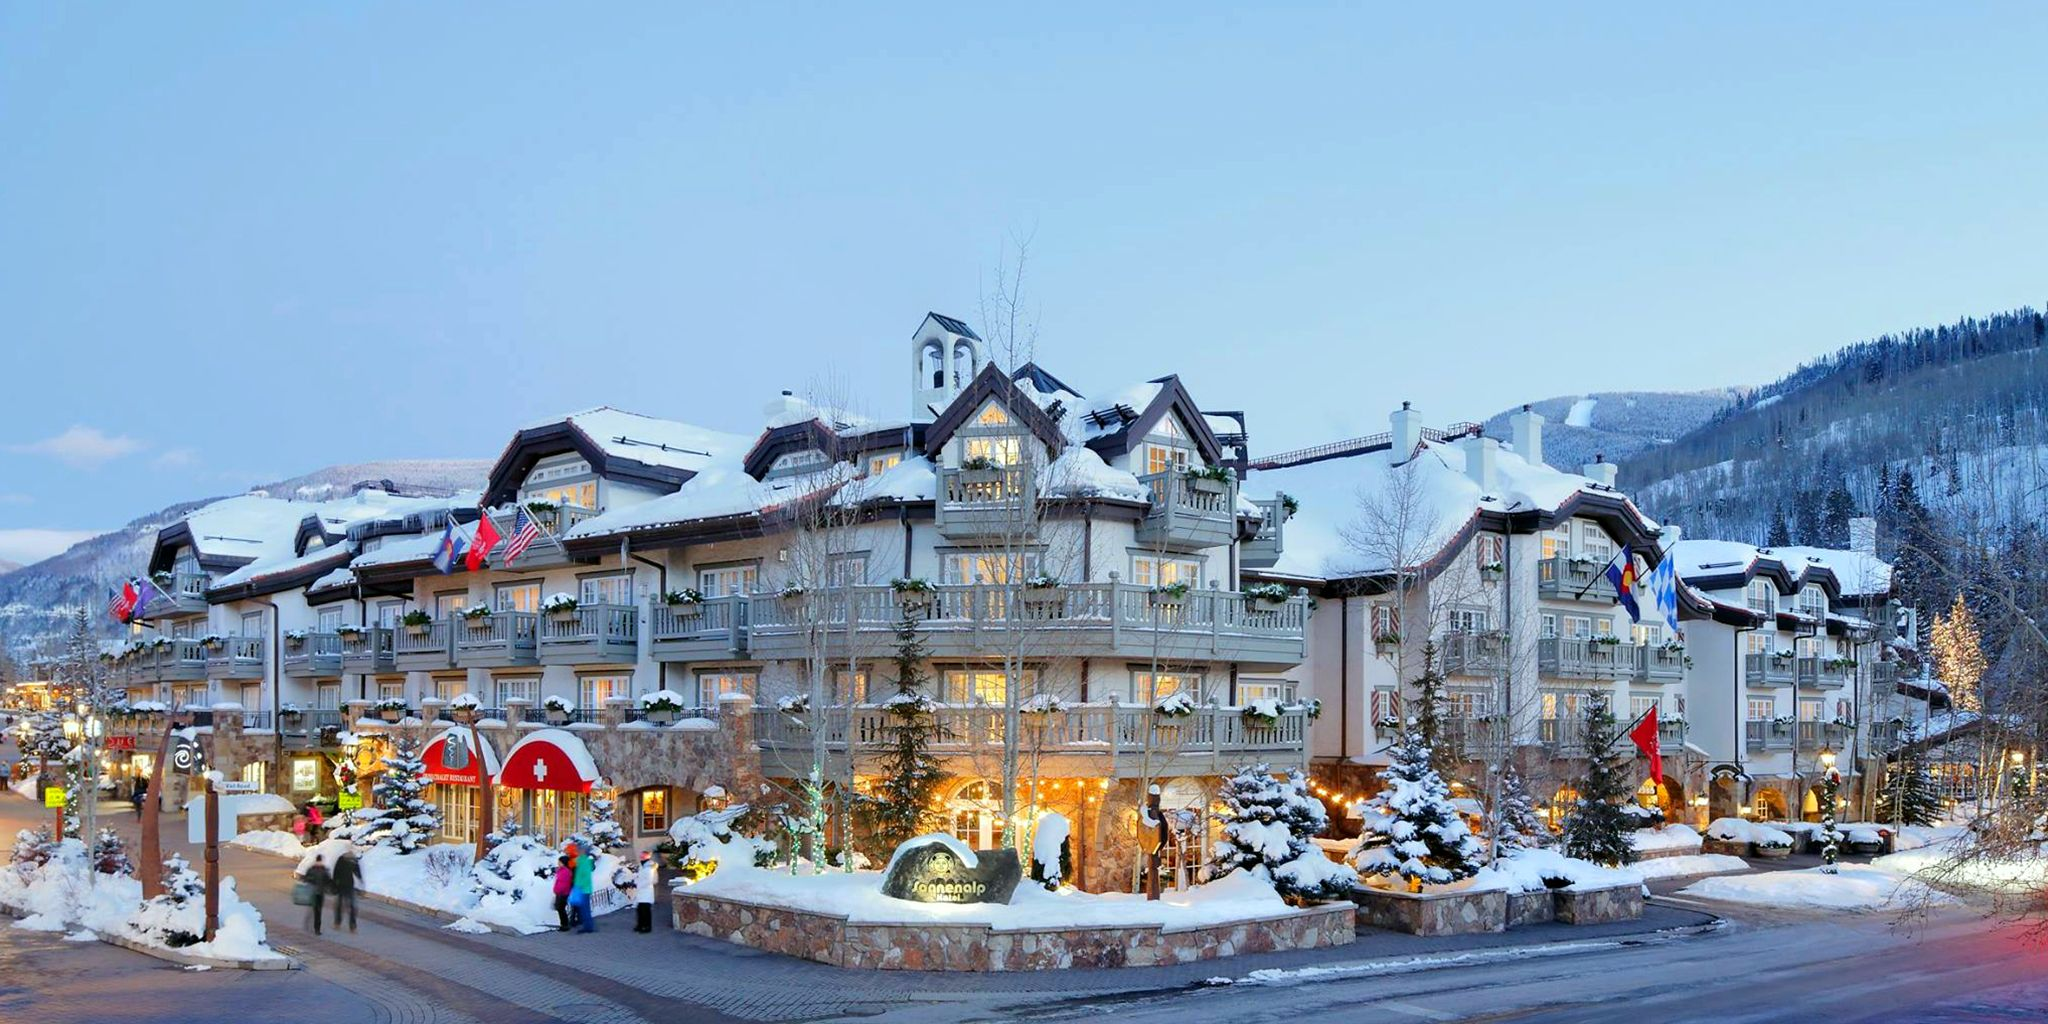 6 Best Hotels In Vail For A Scenic Alpine Getaway Top Vail Hotels Of 2018